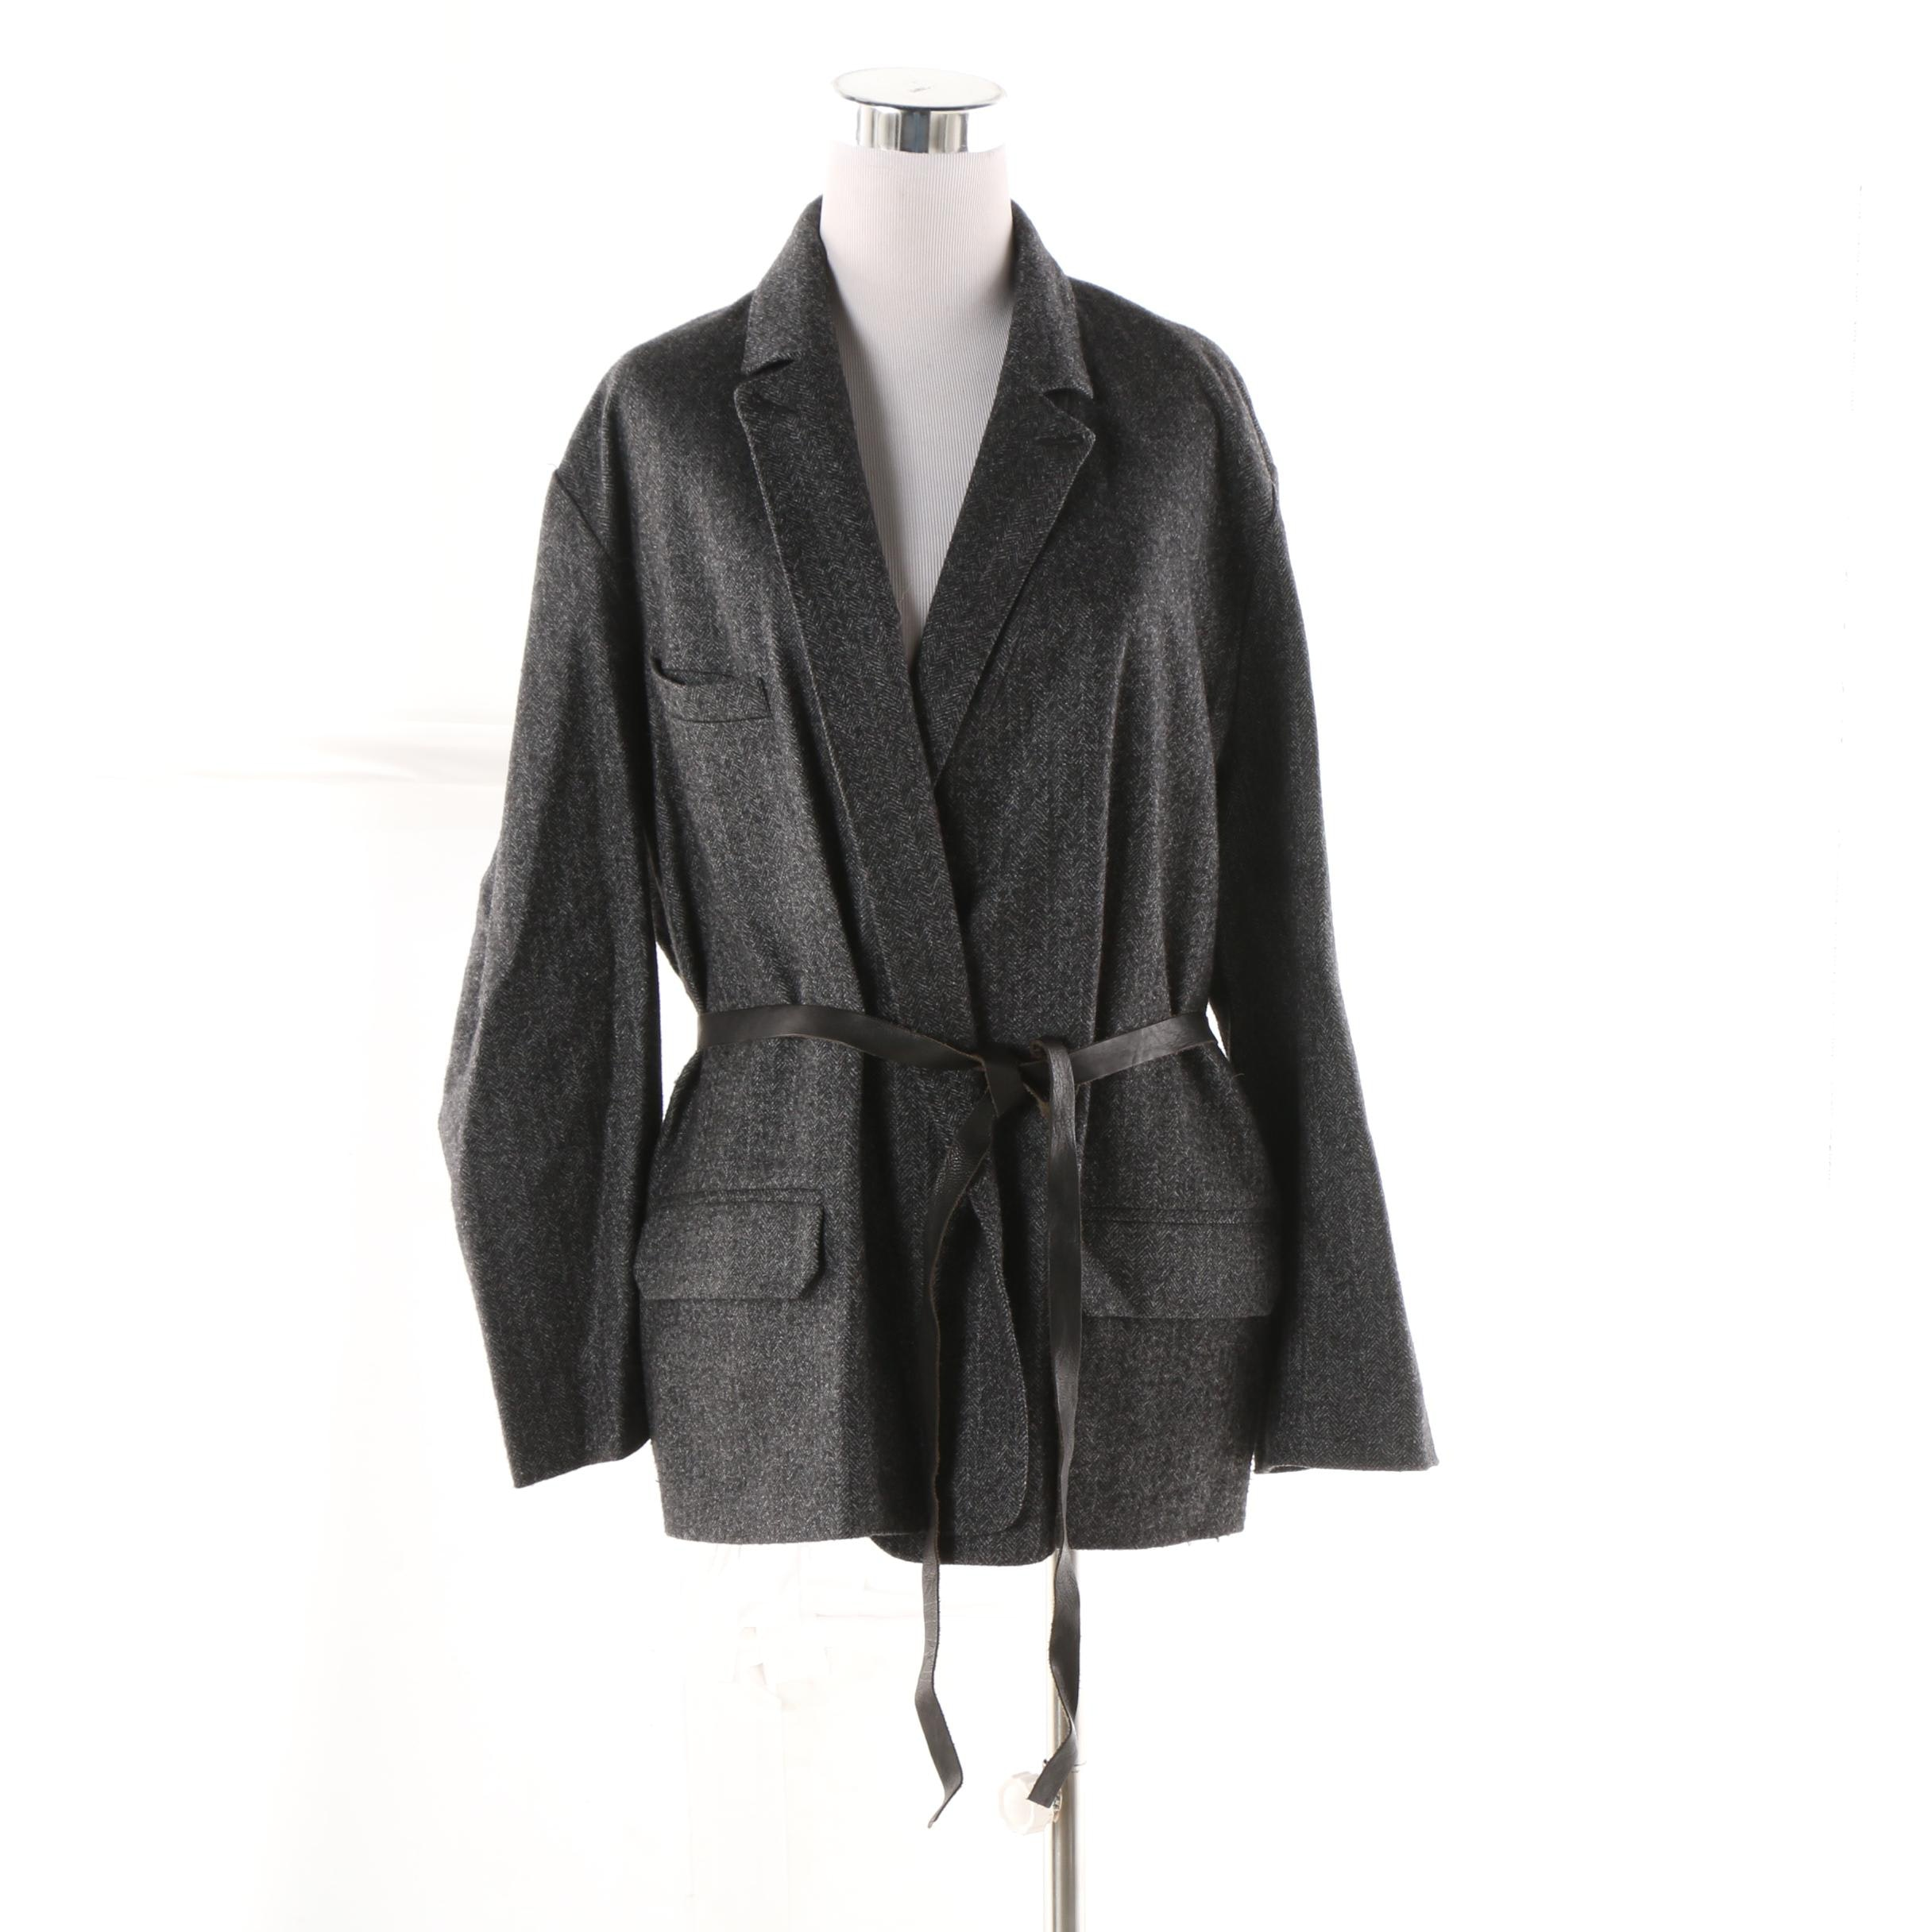 Women's Isabel Marant Charcoal Grey Herringbone Wool Blend Wrap Jacket